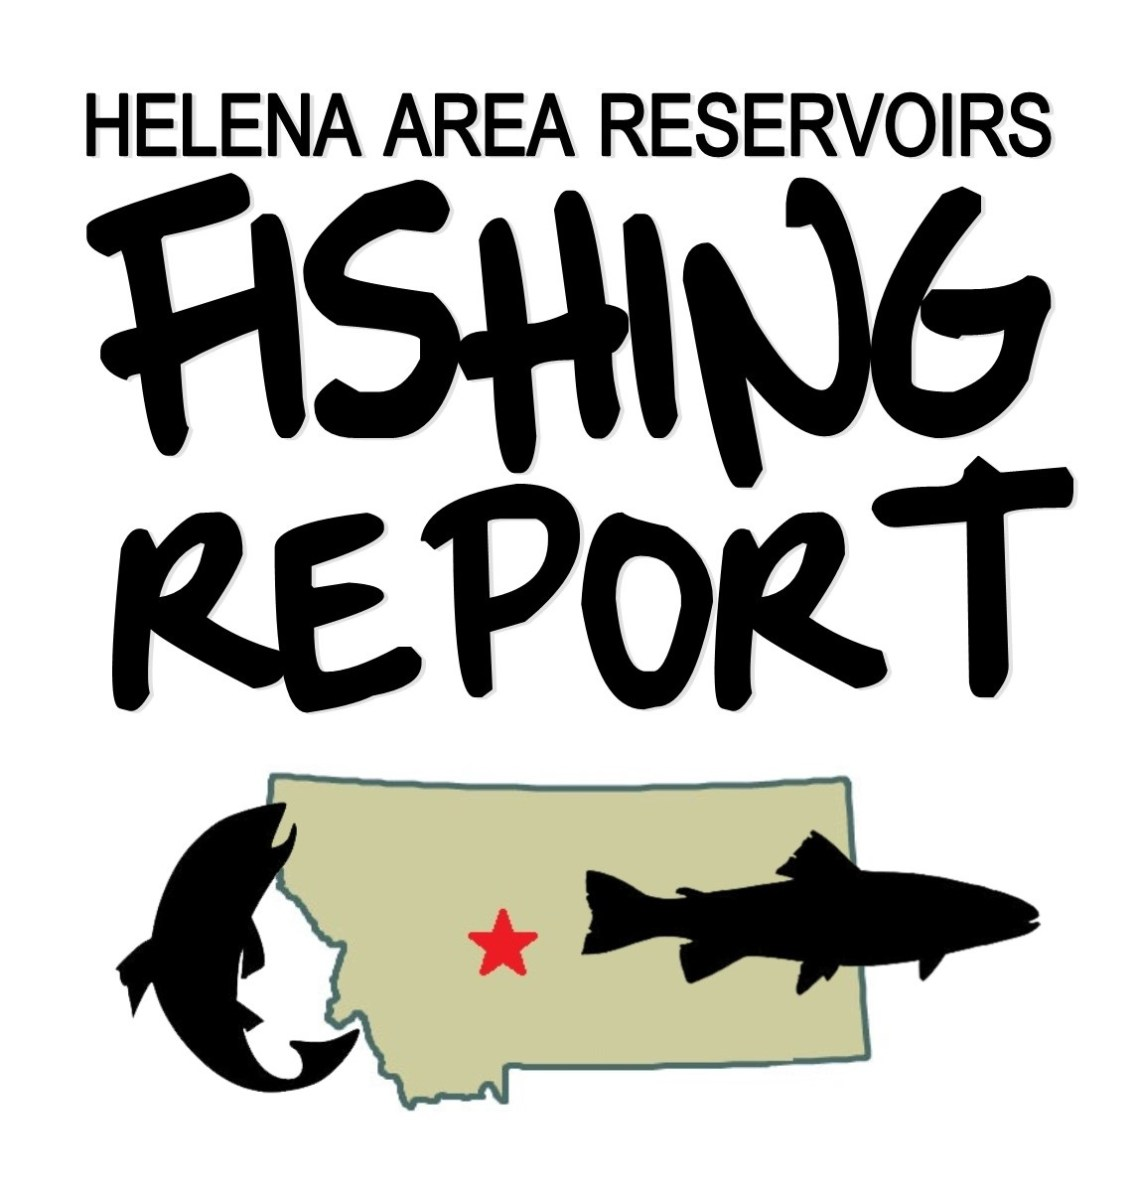 Helena Area Reservoirs Fishing Report for the Week of 8.25.14